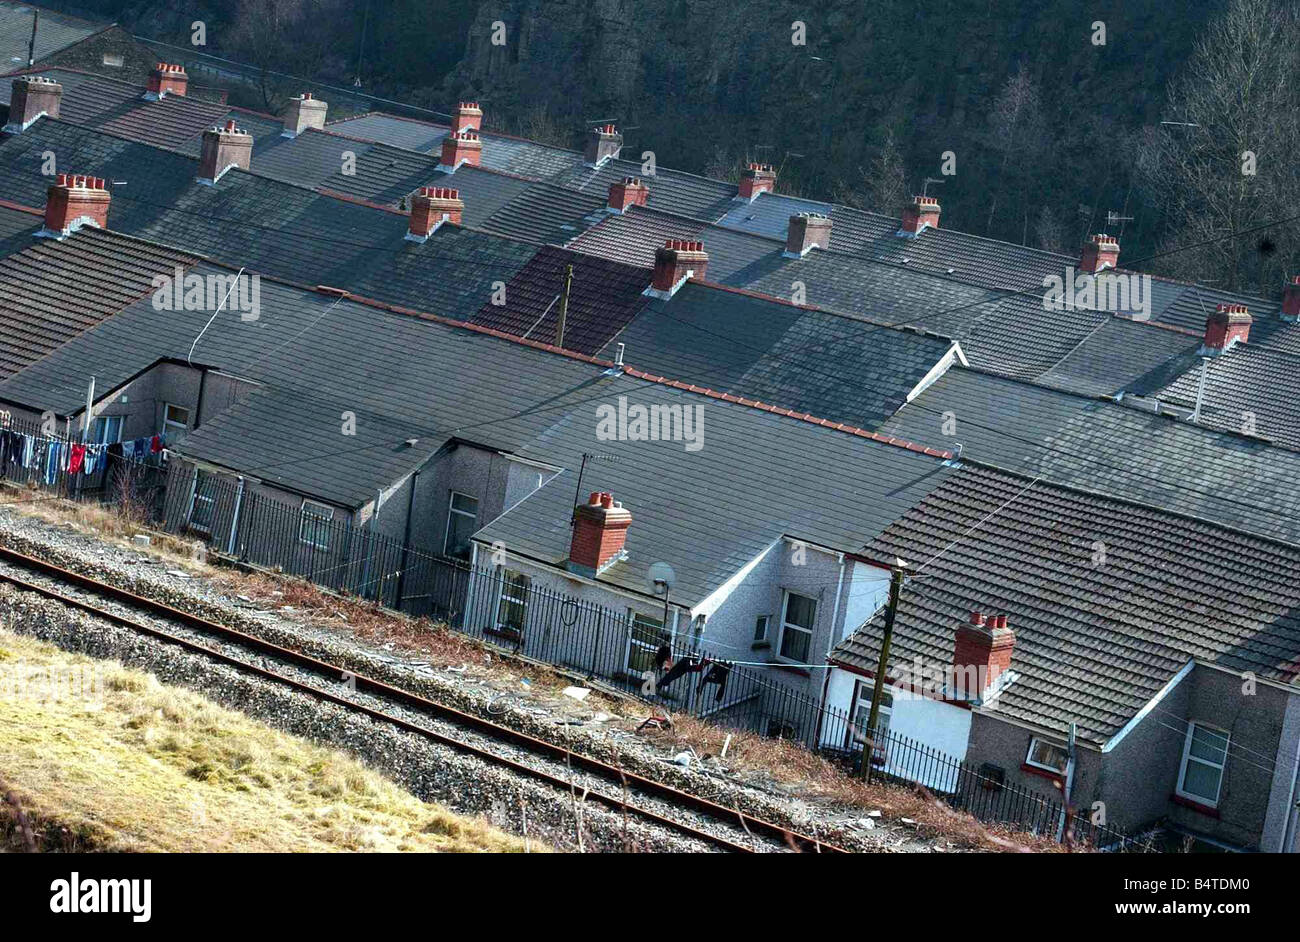 Llanhilleth village picture show rooftops near rhe railway line 24th March 2003 - Stock Image